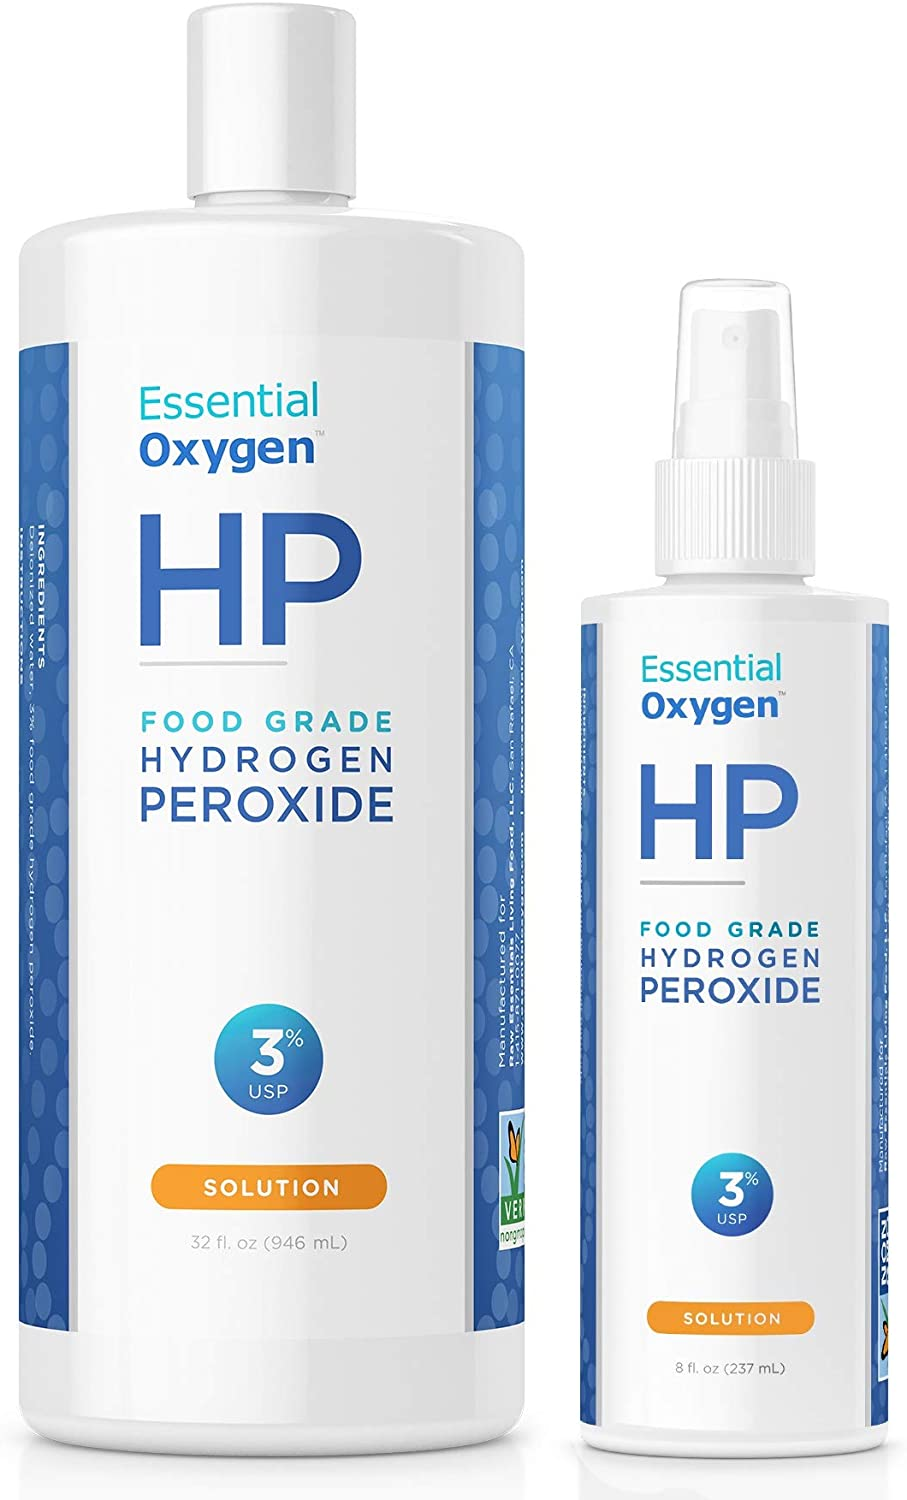 Essential Oxygen Food Grade Hydrogen Peroxide 3%, Natural Cleaner, 8 Oz Spray With 32 Oz Refill